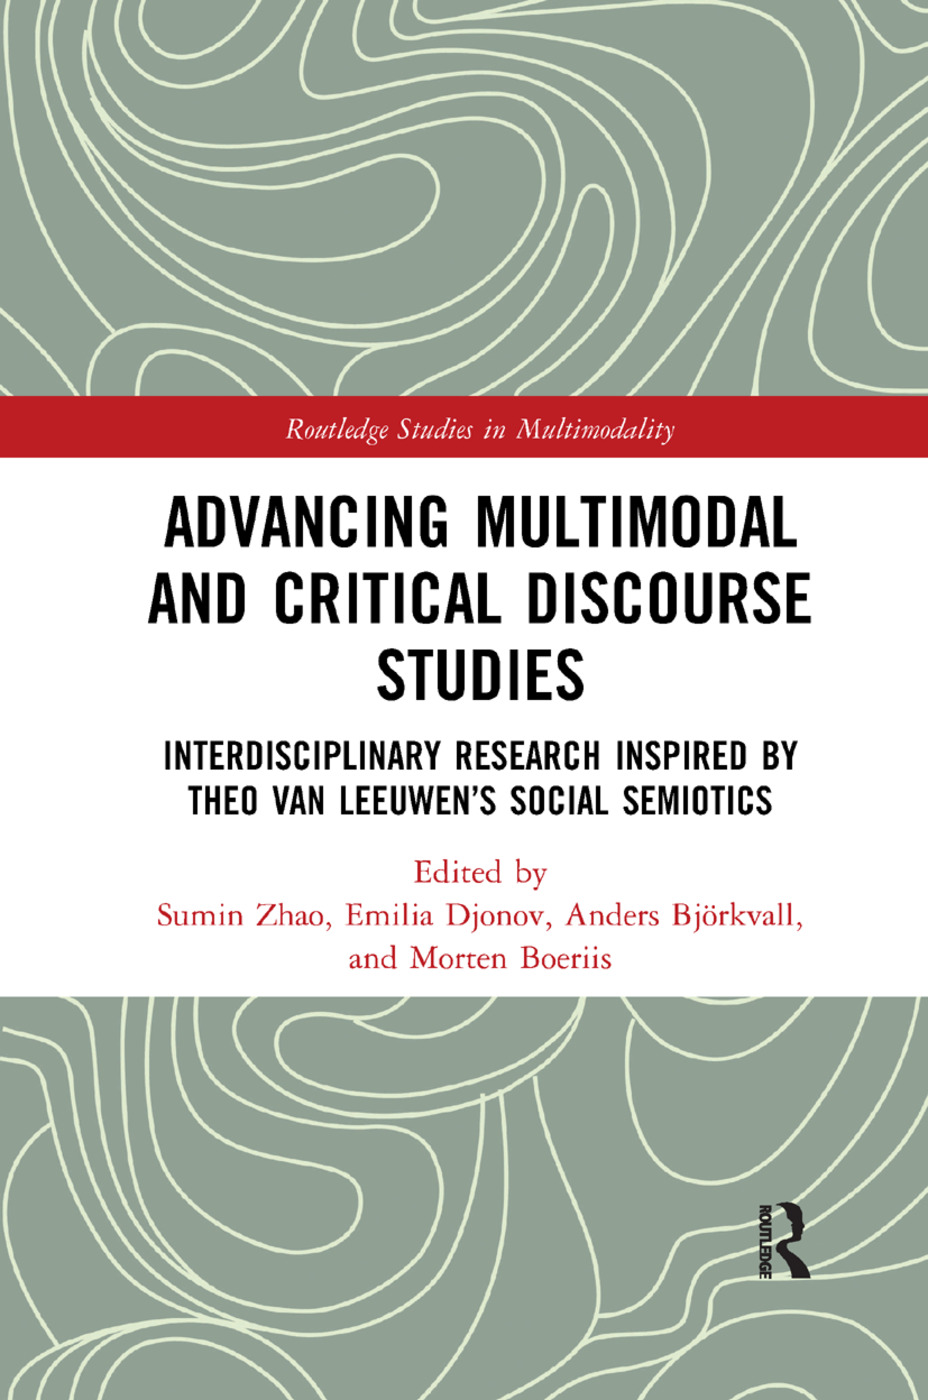 Advancing Multimodal and Critical Discourse Studies: Interdisciplinary Research Inspired by Theo Van Leeuwen's Social Semiotics book cover